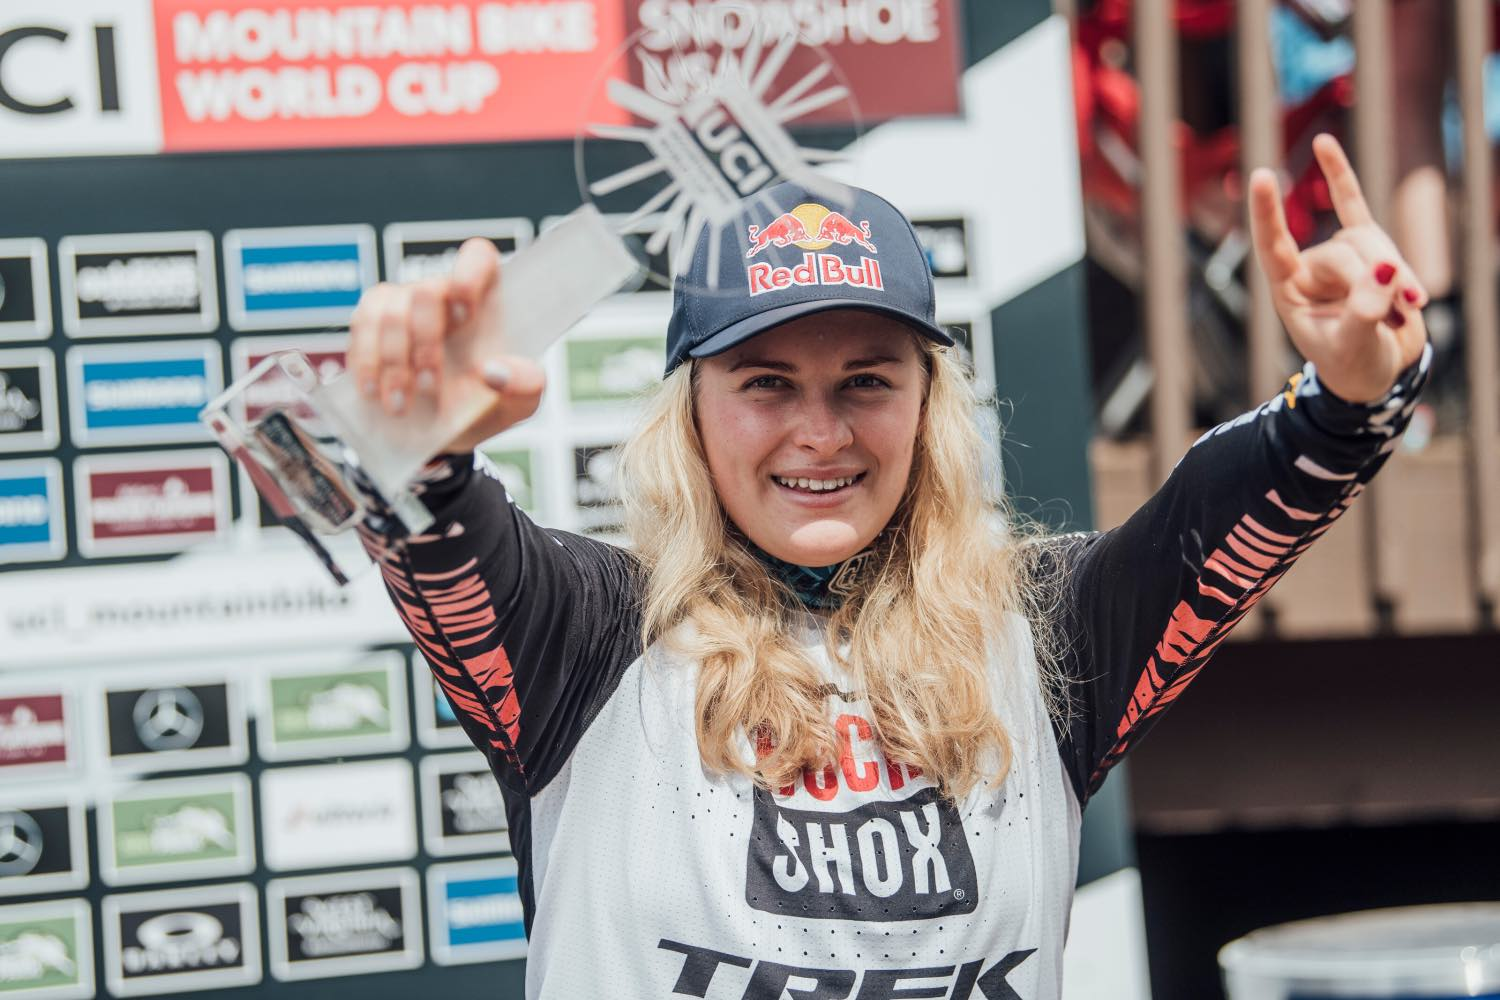 Vali Holl is your 2021 Downhill MTB World Cup Champion